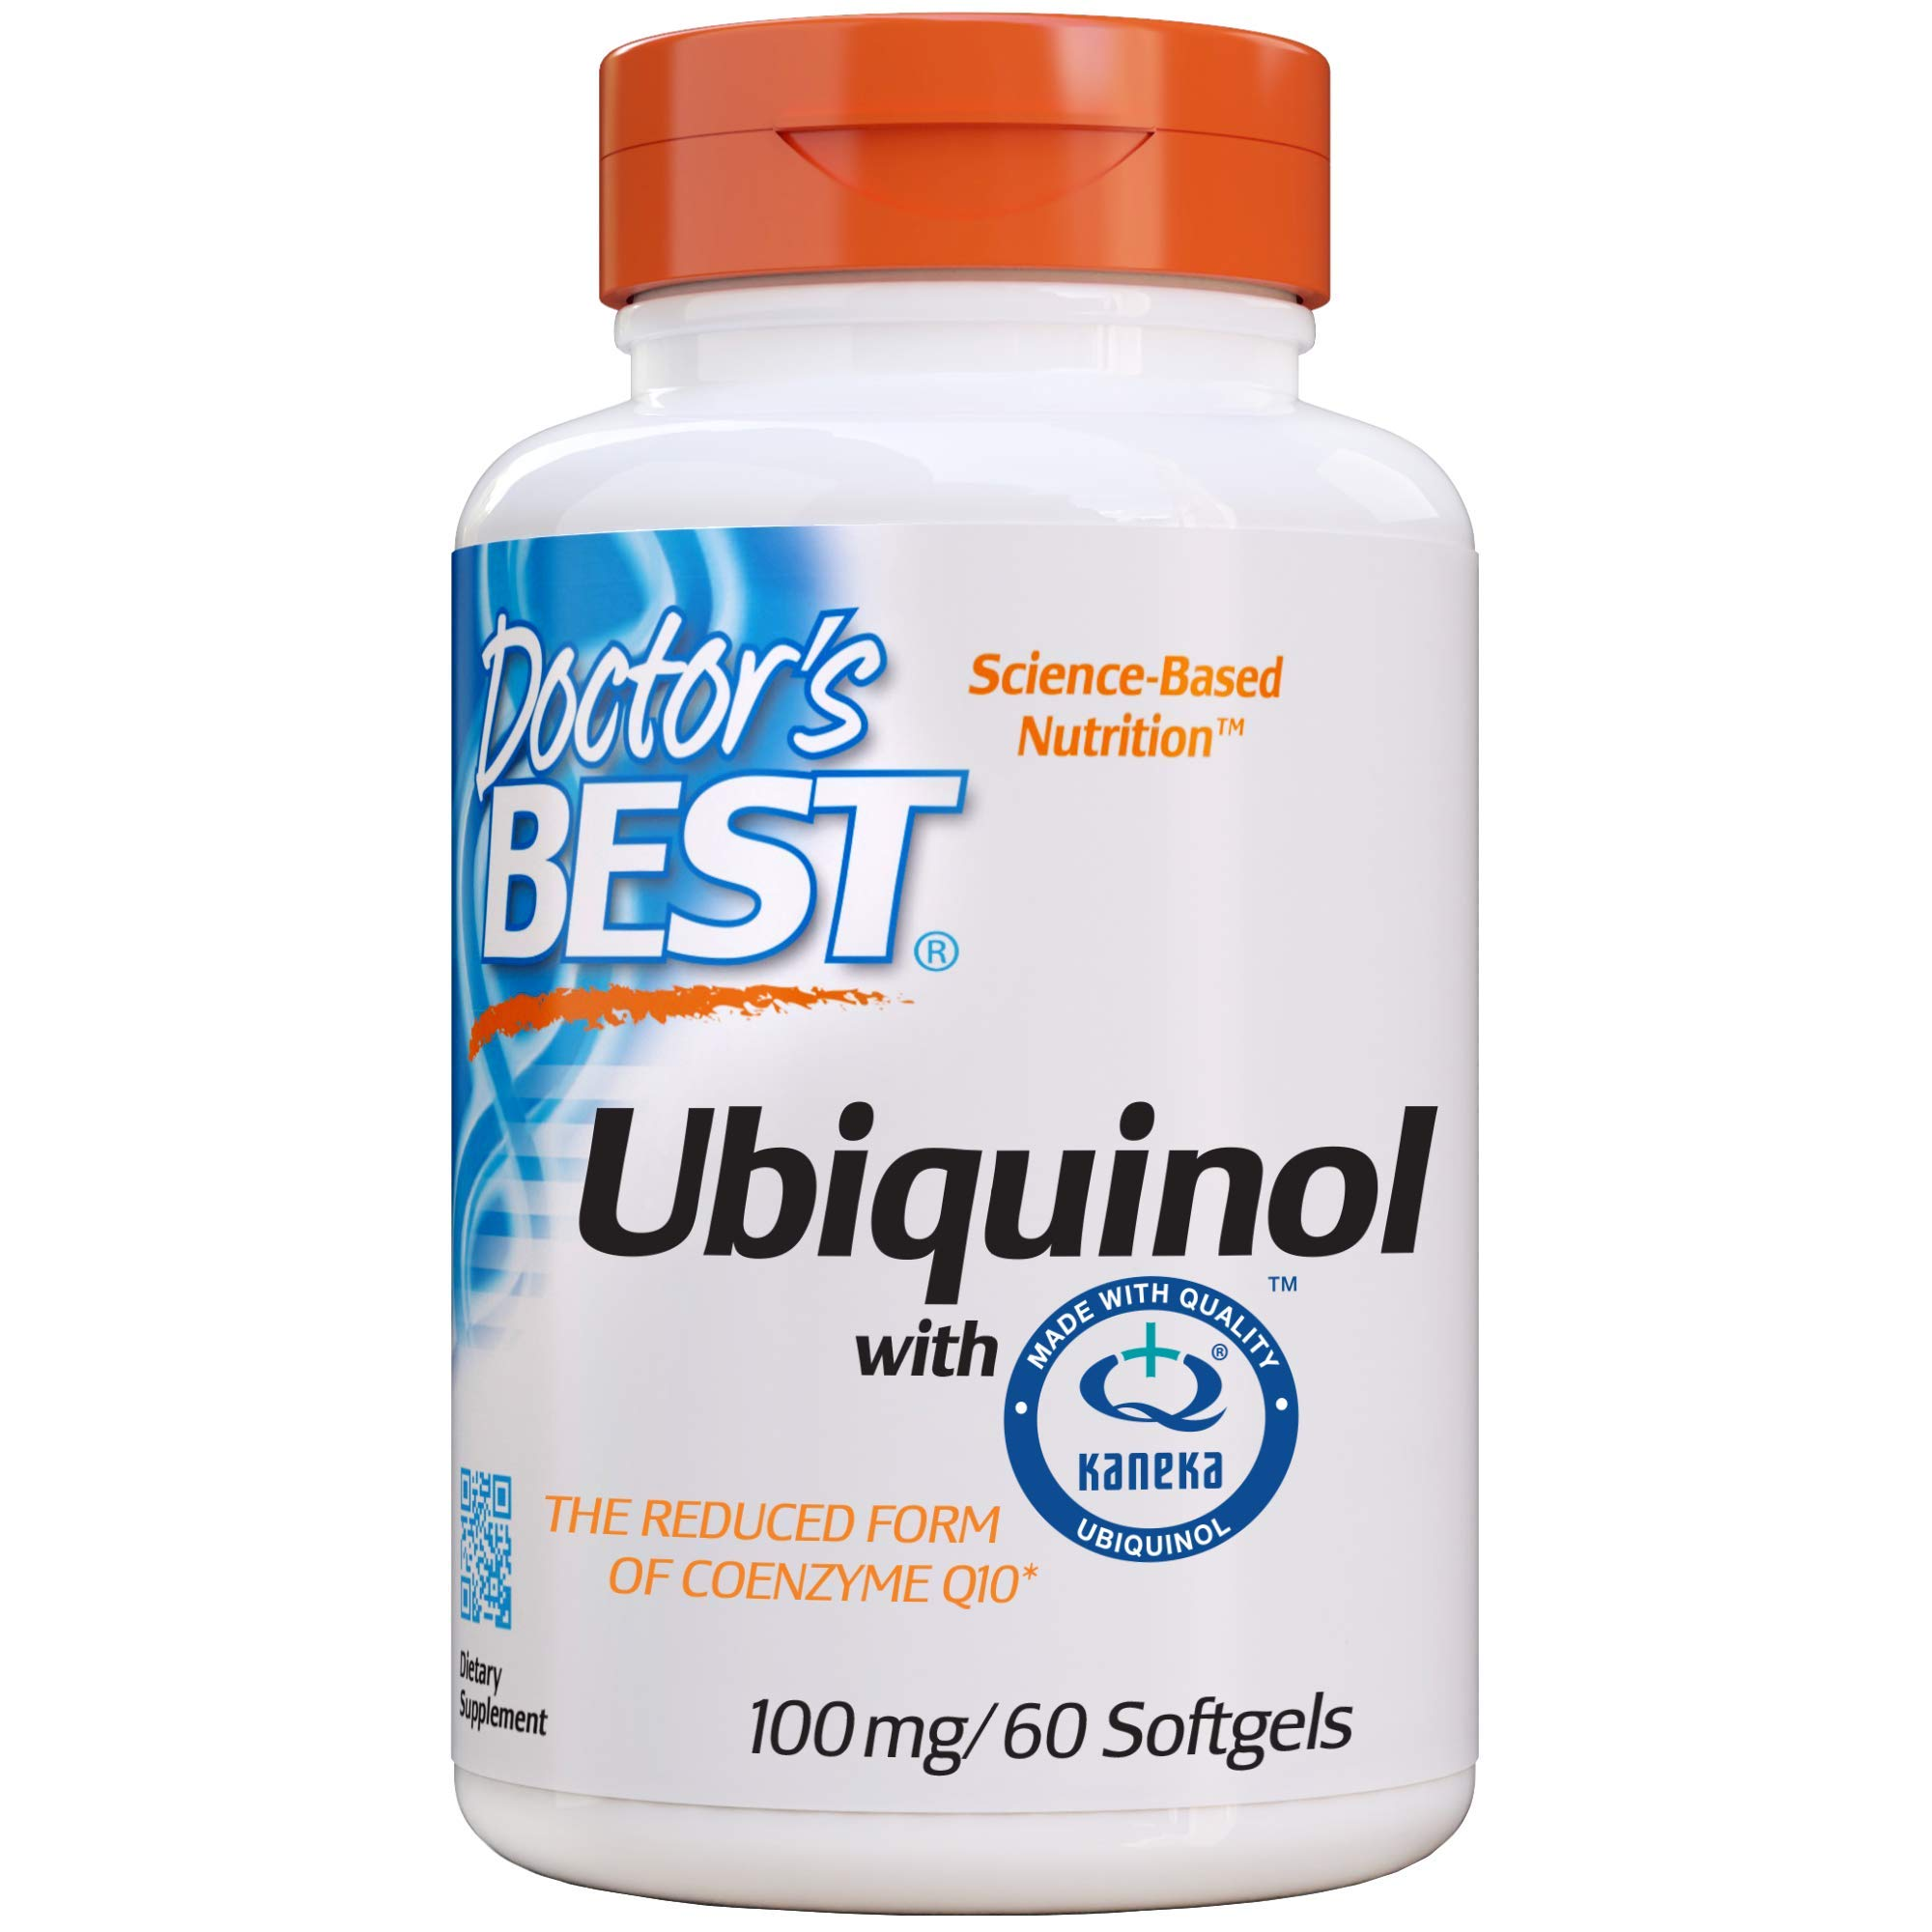 Doctor's Best Ubiquinol with Kaneka QH, Non-GMO, Gluten Free, Soy Free, Heart Health, 100 mg, 60 Softgels by Doctor's Best